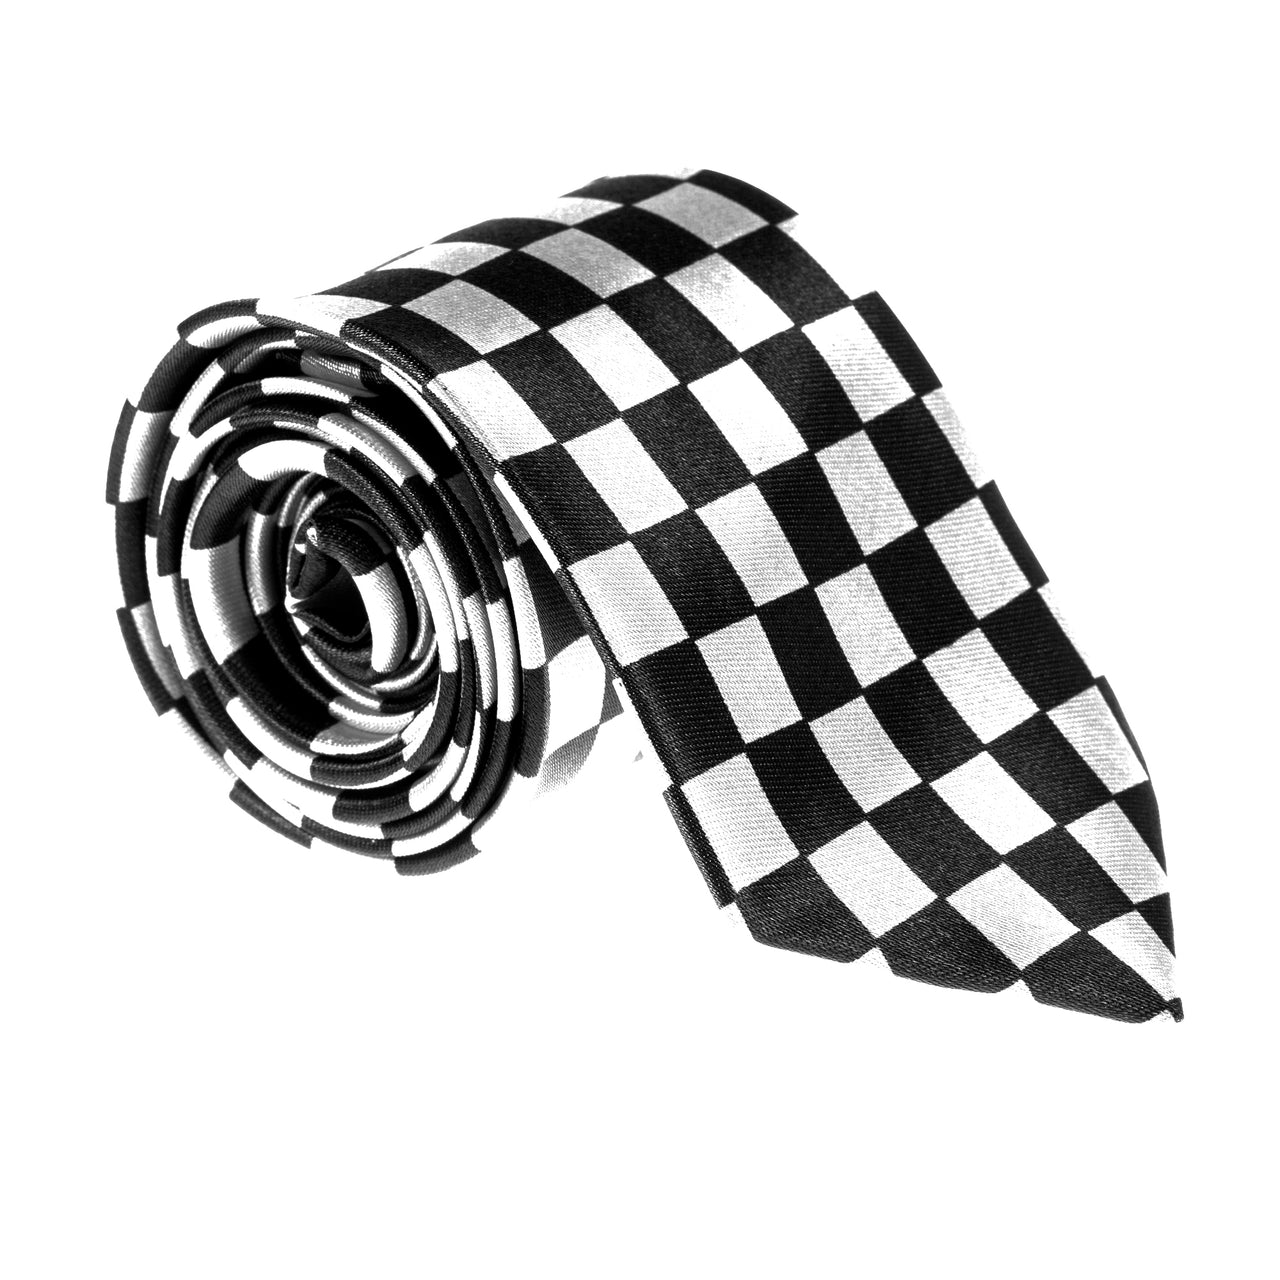 "Slim / Skinny 2"" Satin Tie - Black / White Check"